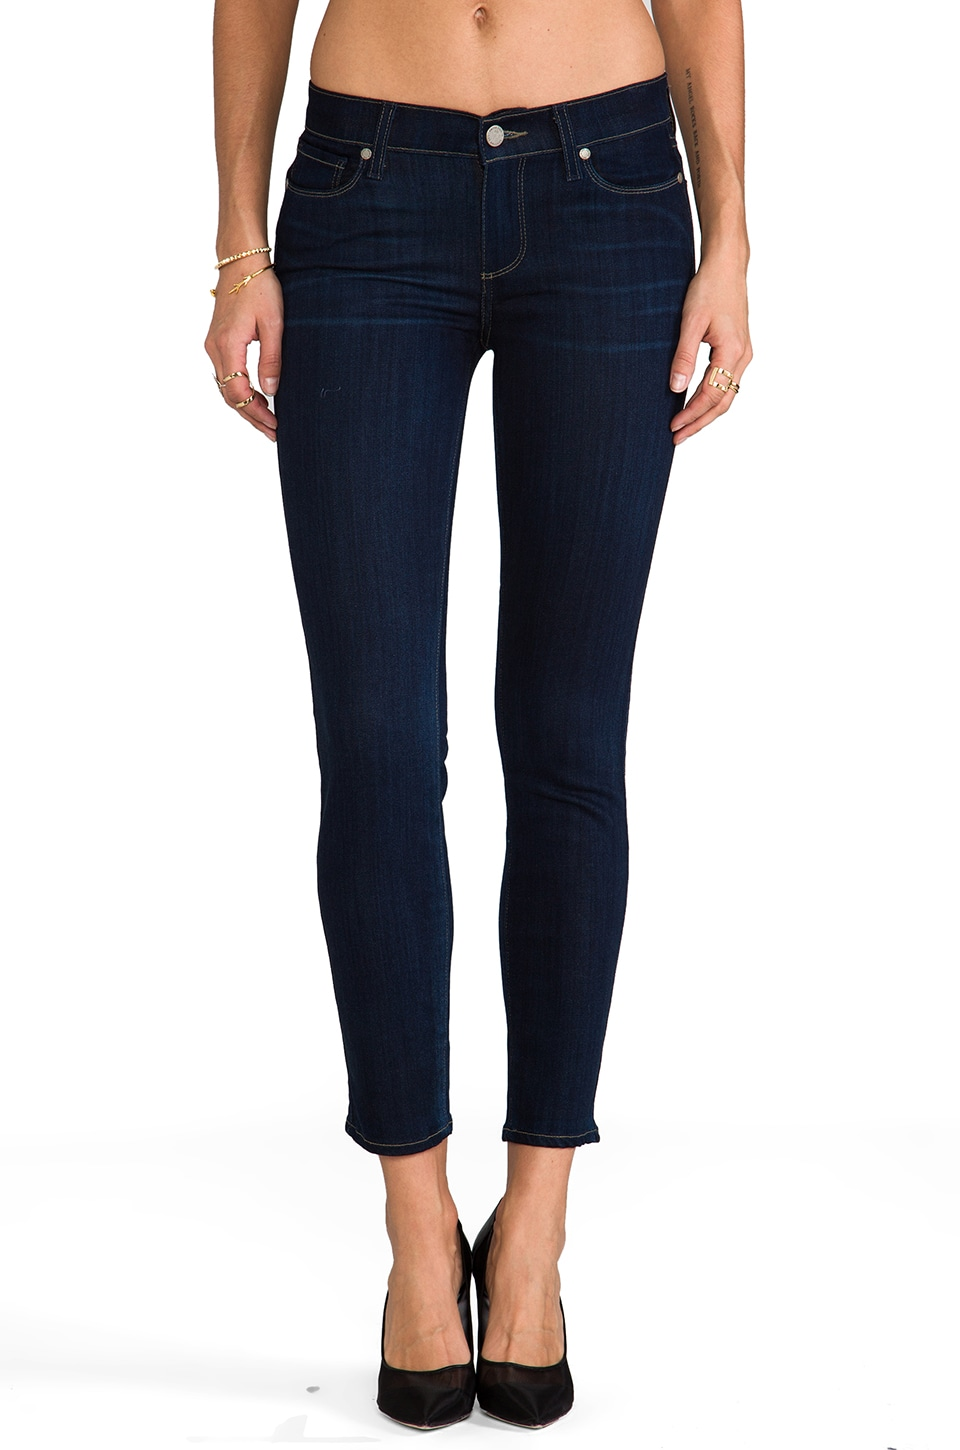 Paige Denim Verdugo Ankle in Ashbury